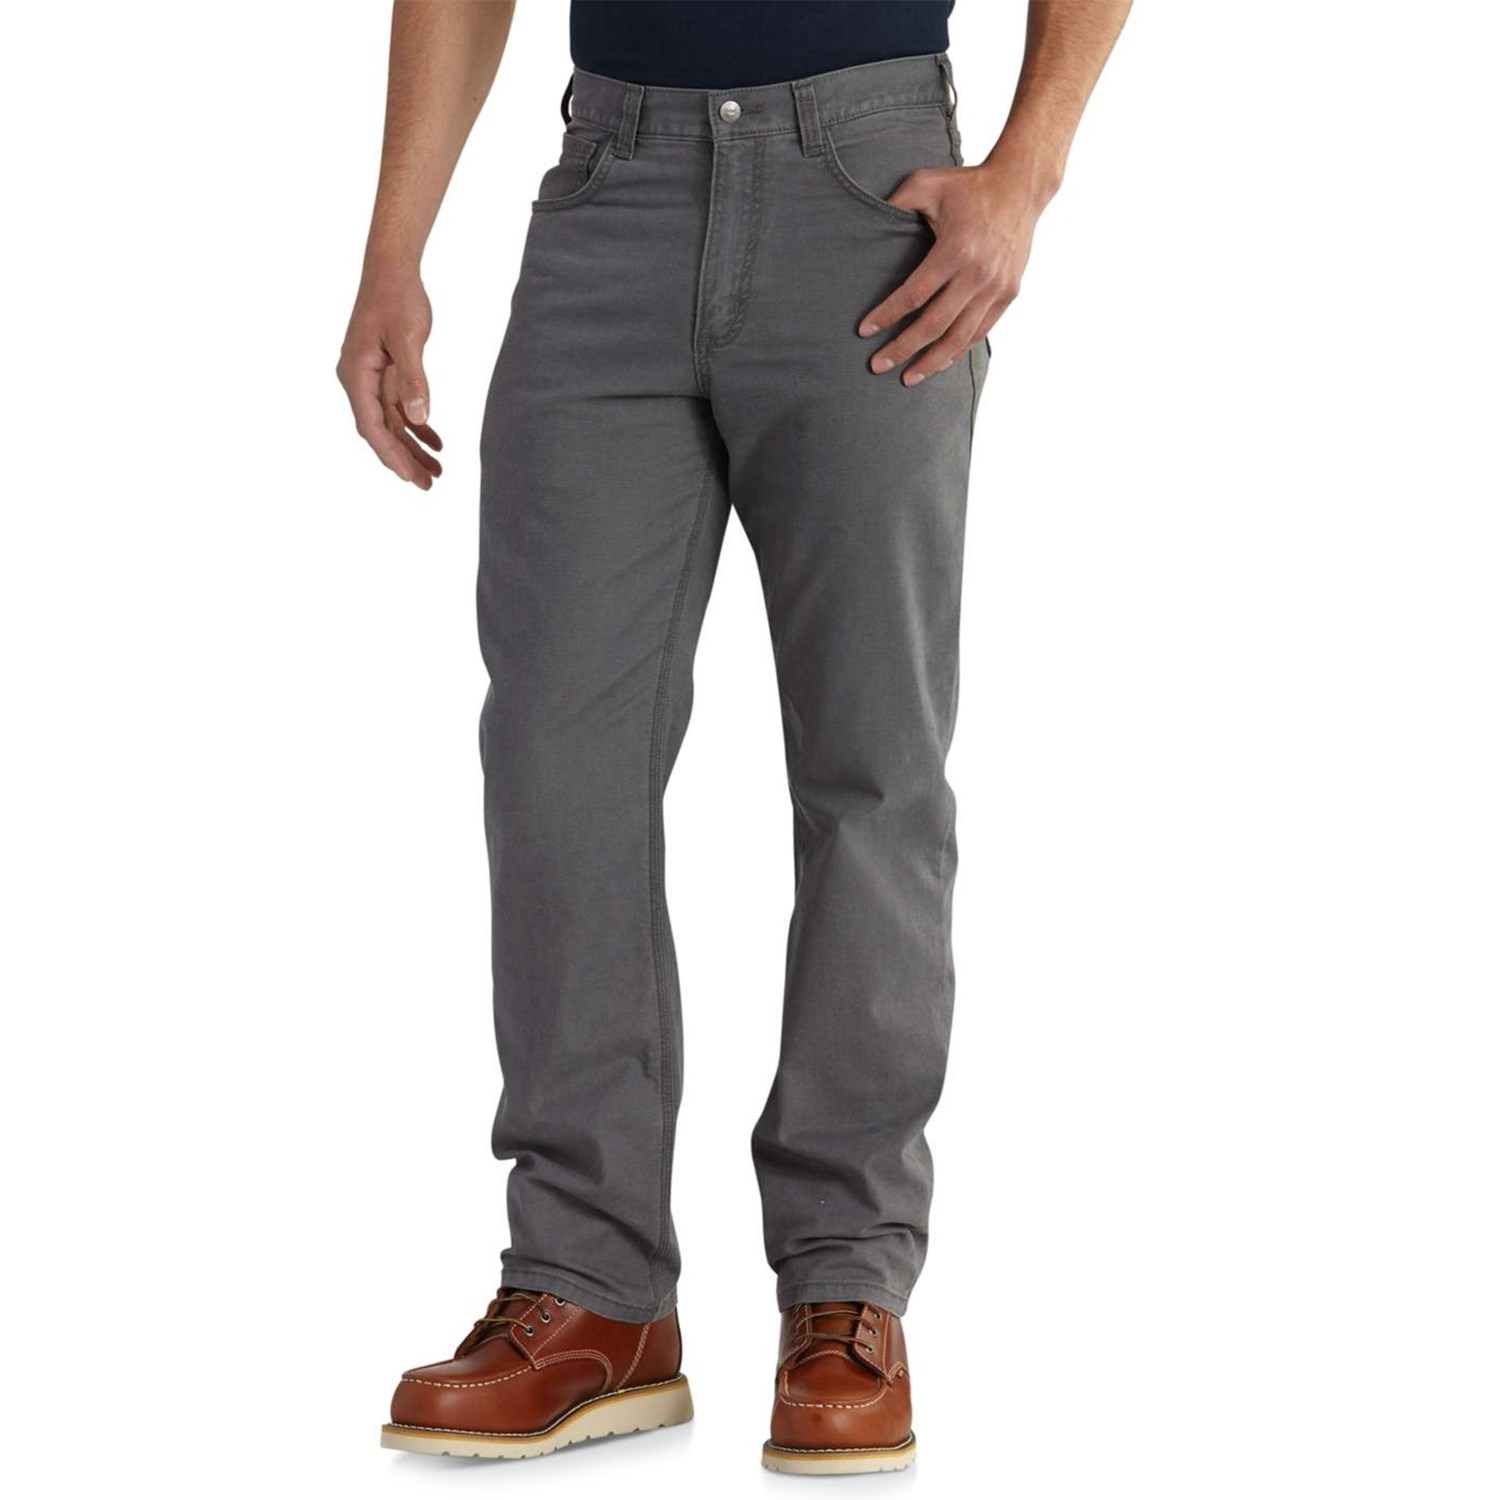 Bedroom Colors For Women Carhartt Rugged Flex 174 Rigby Work Pants For Men